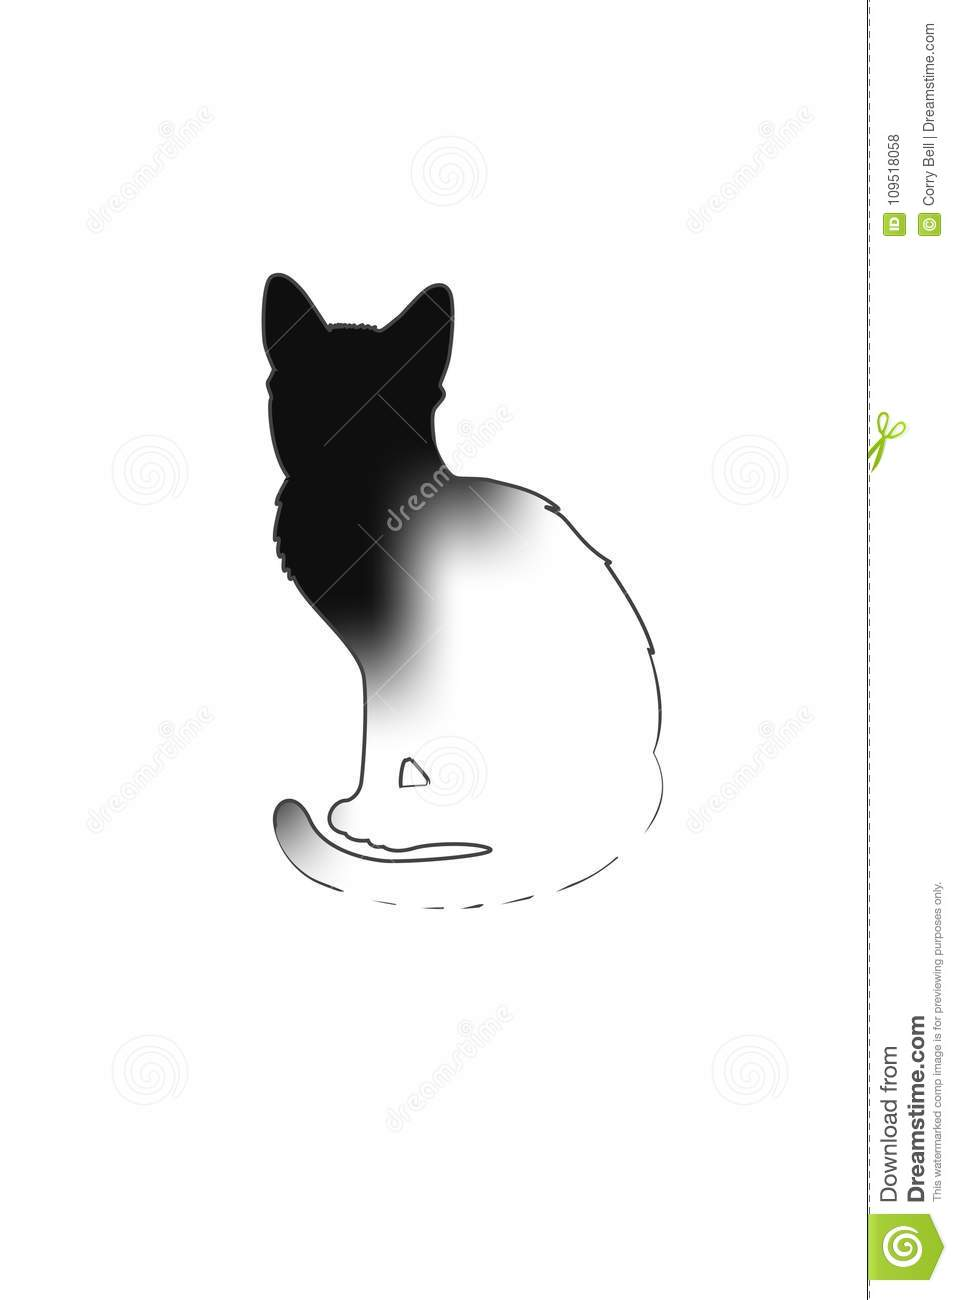 Black Cat Silhouette Stock Vector Illustration Of Store